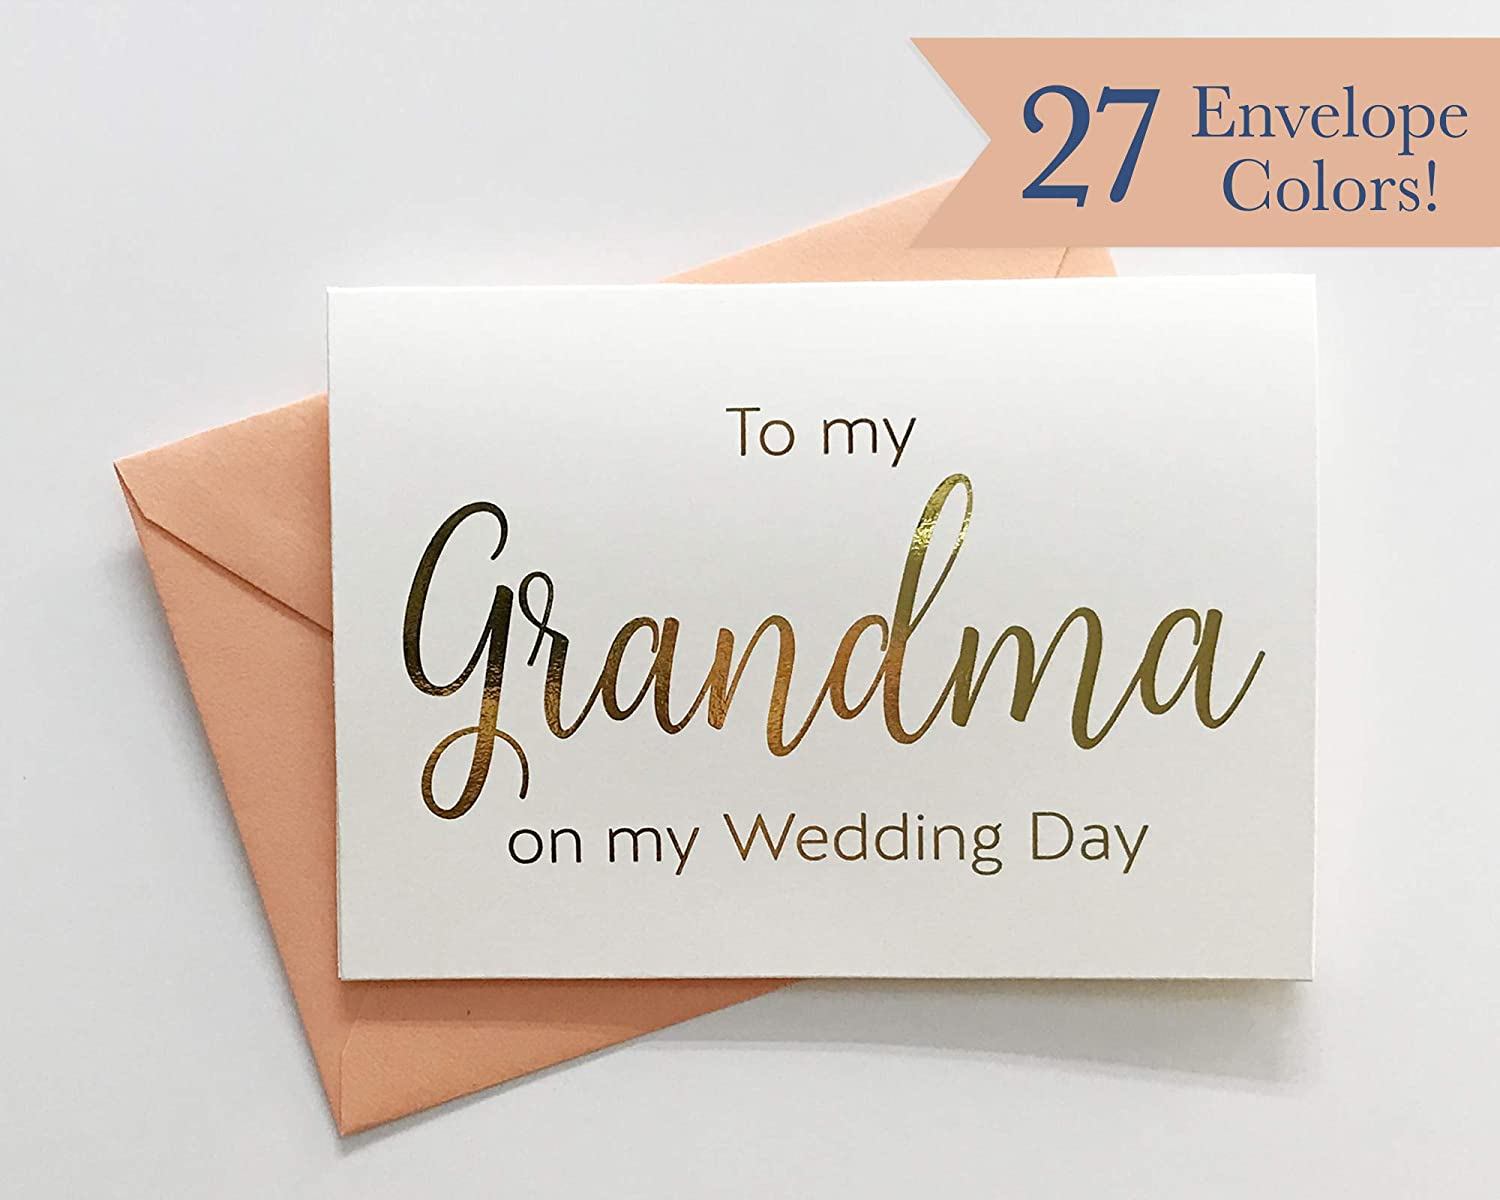 Foiled Printed Cards with Envelopes WC144-SW-F To My Grandma on My Wedding Day Card